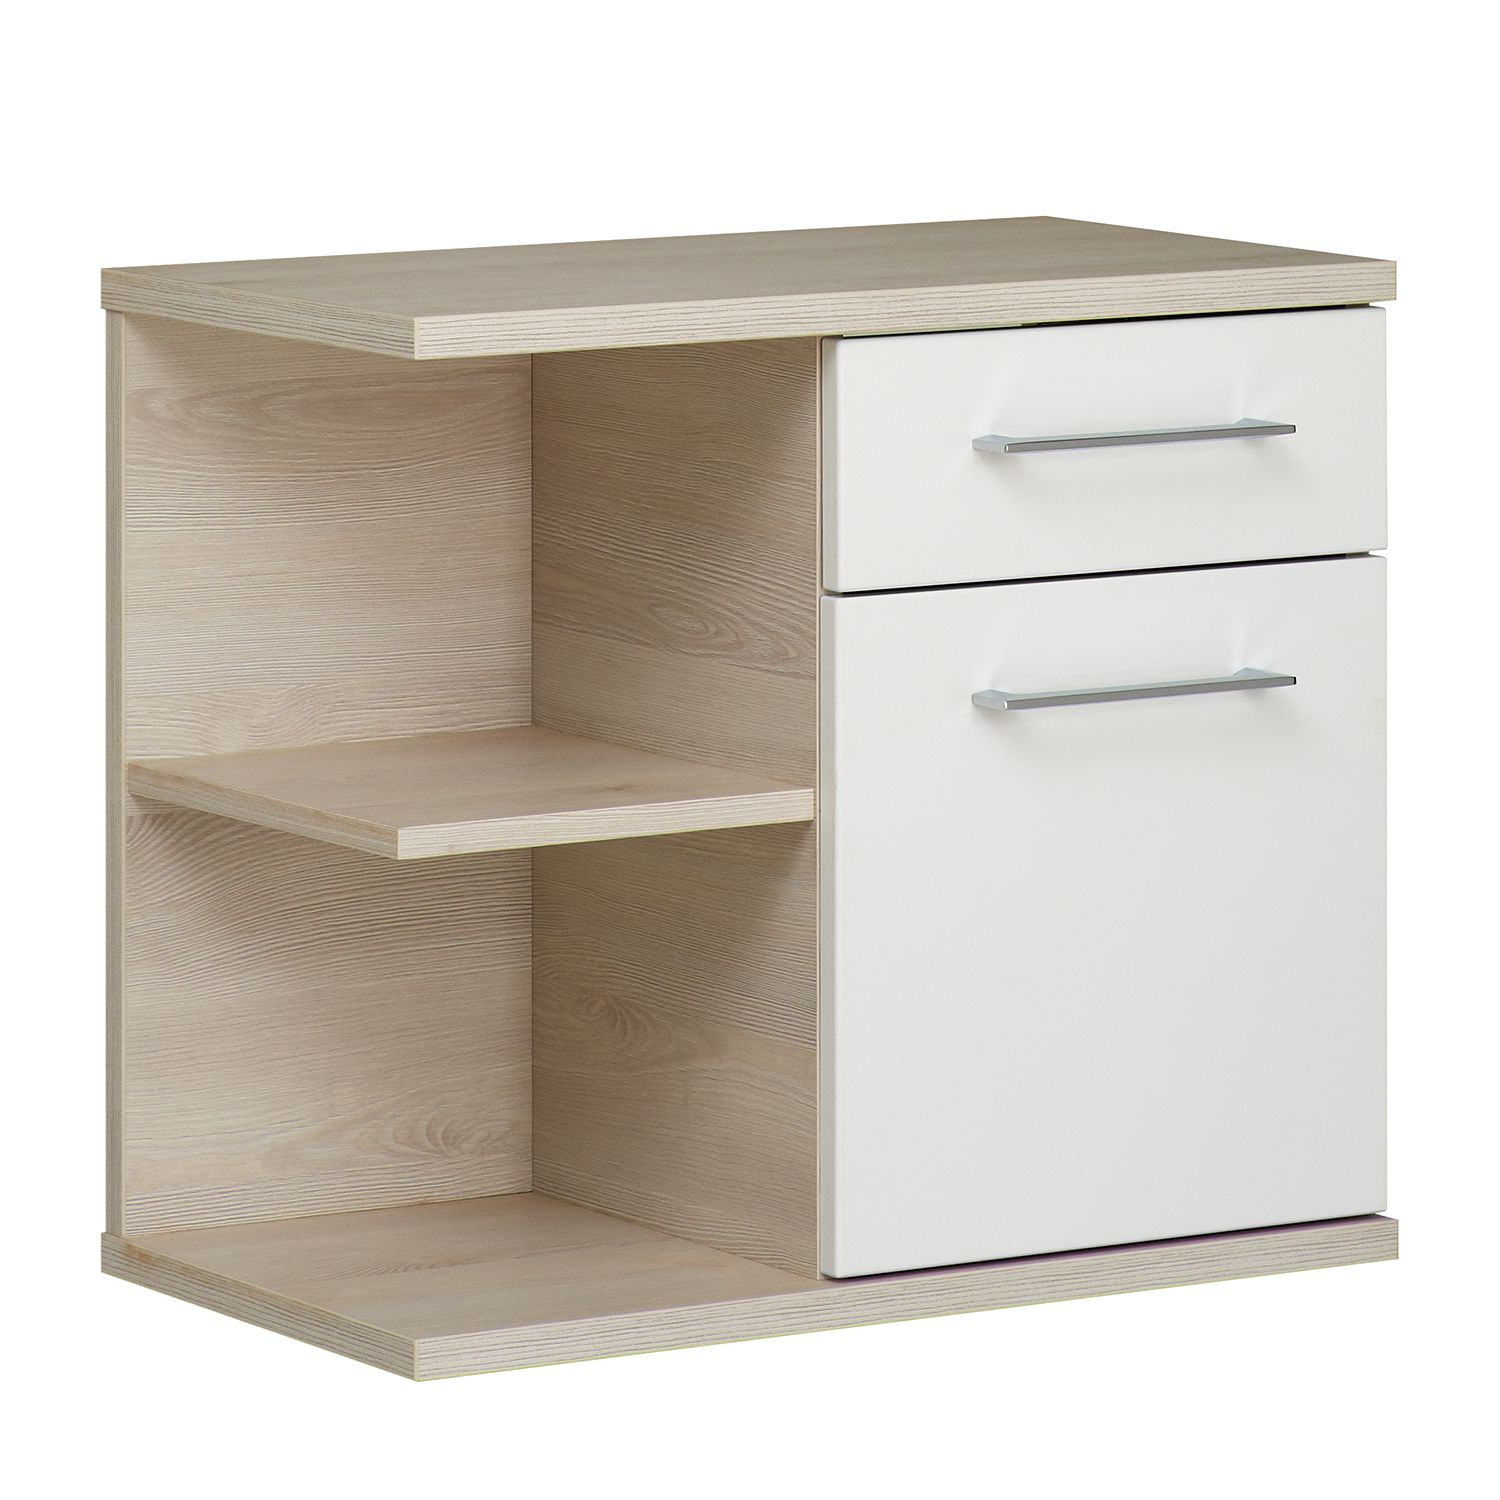 Armoire basse Fresh Line II - Imitation pin Ida clair / Blanc brillant, Pelipal